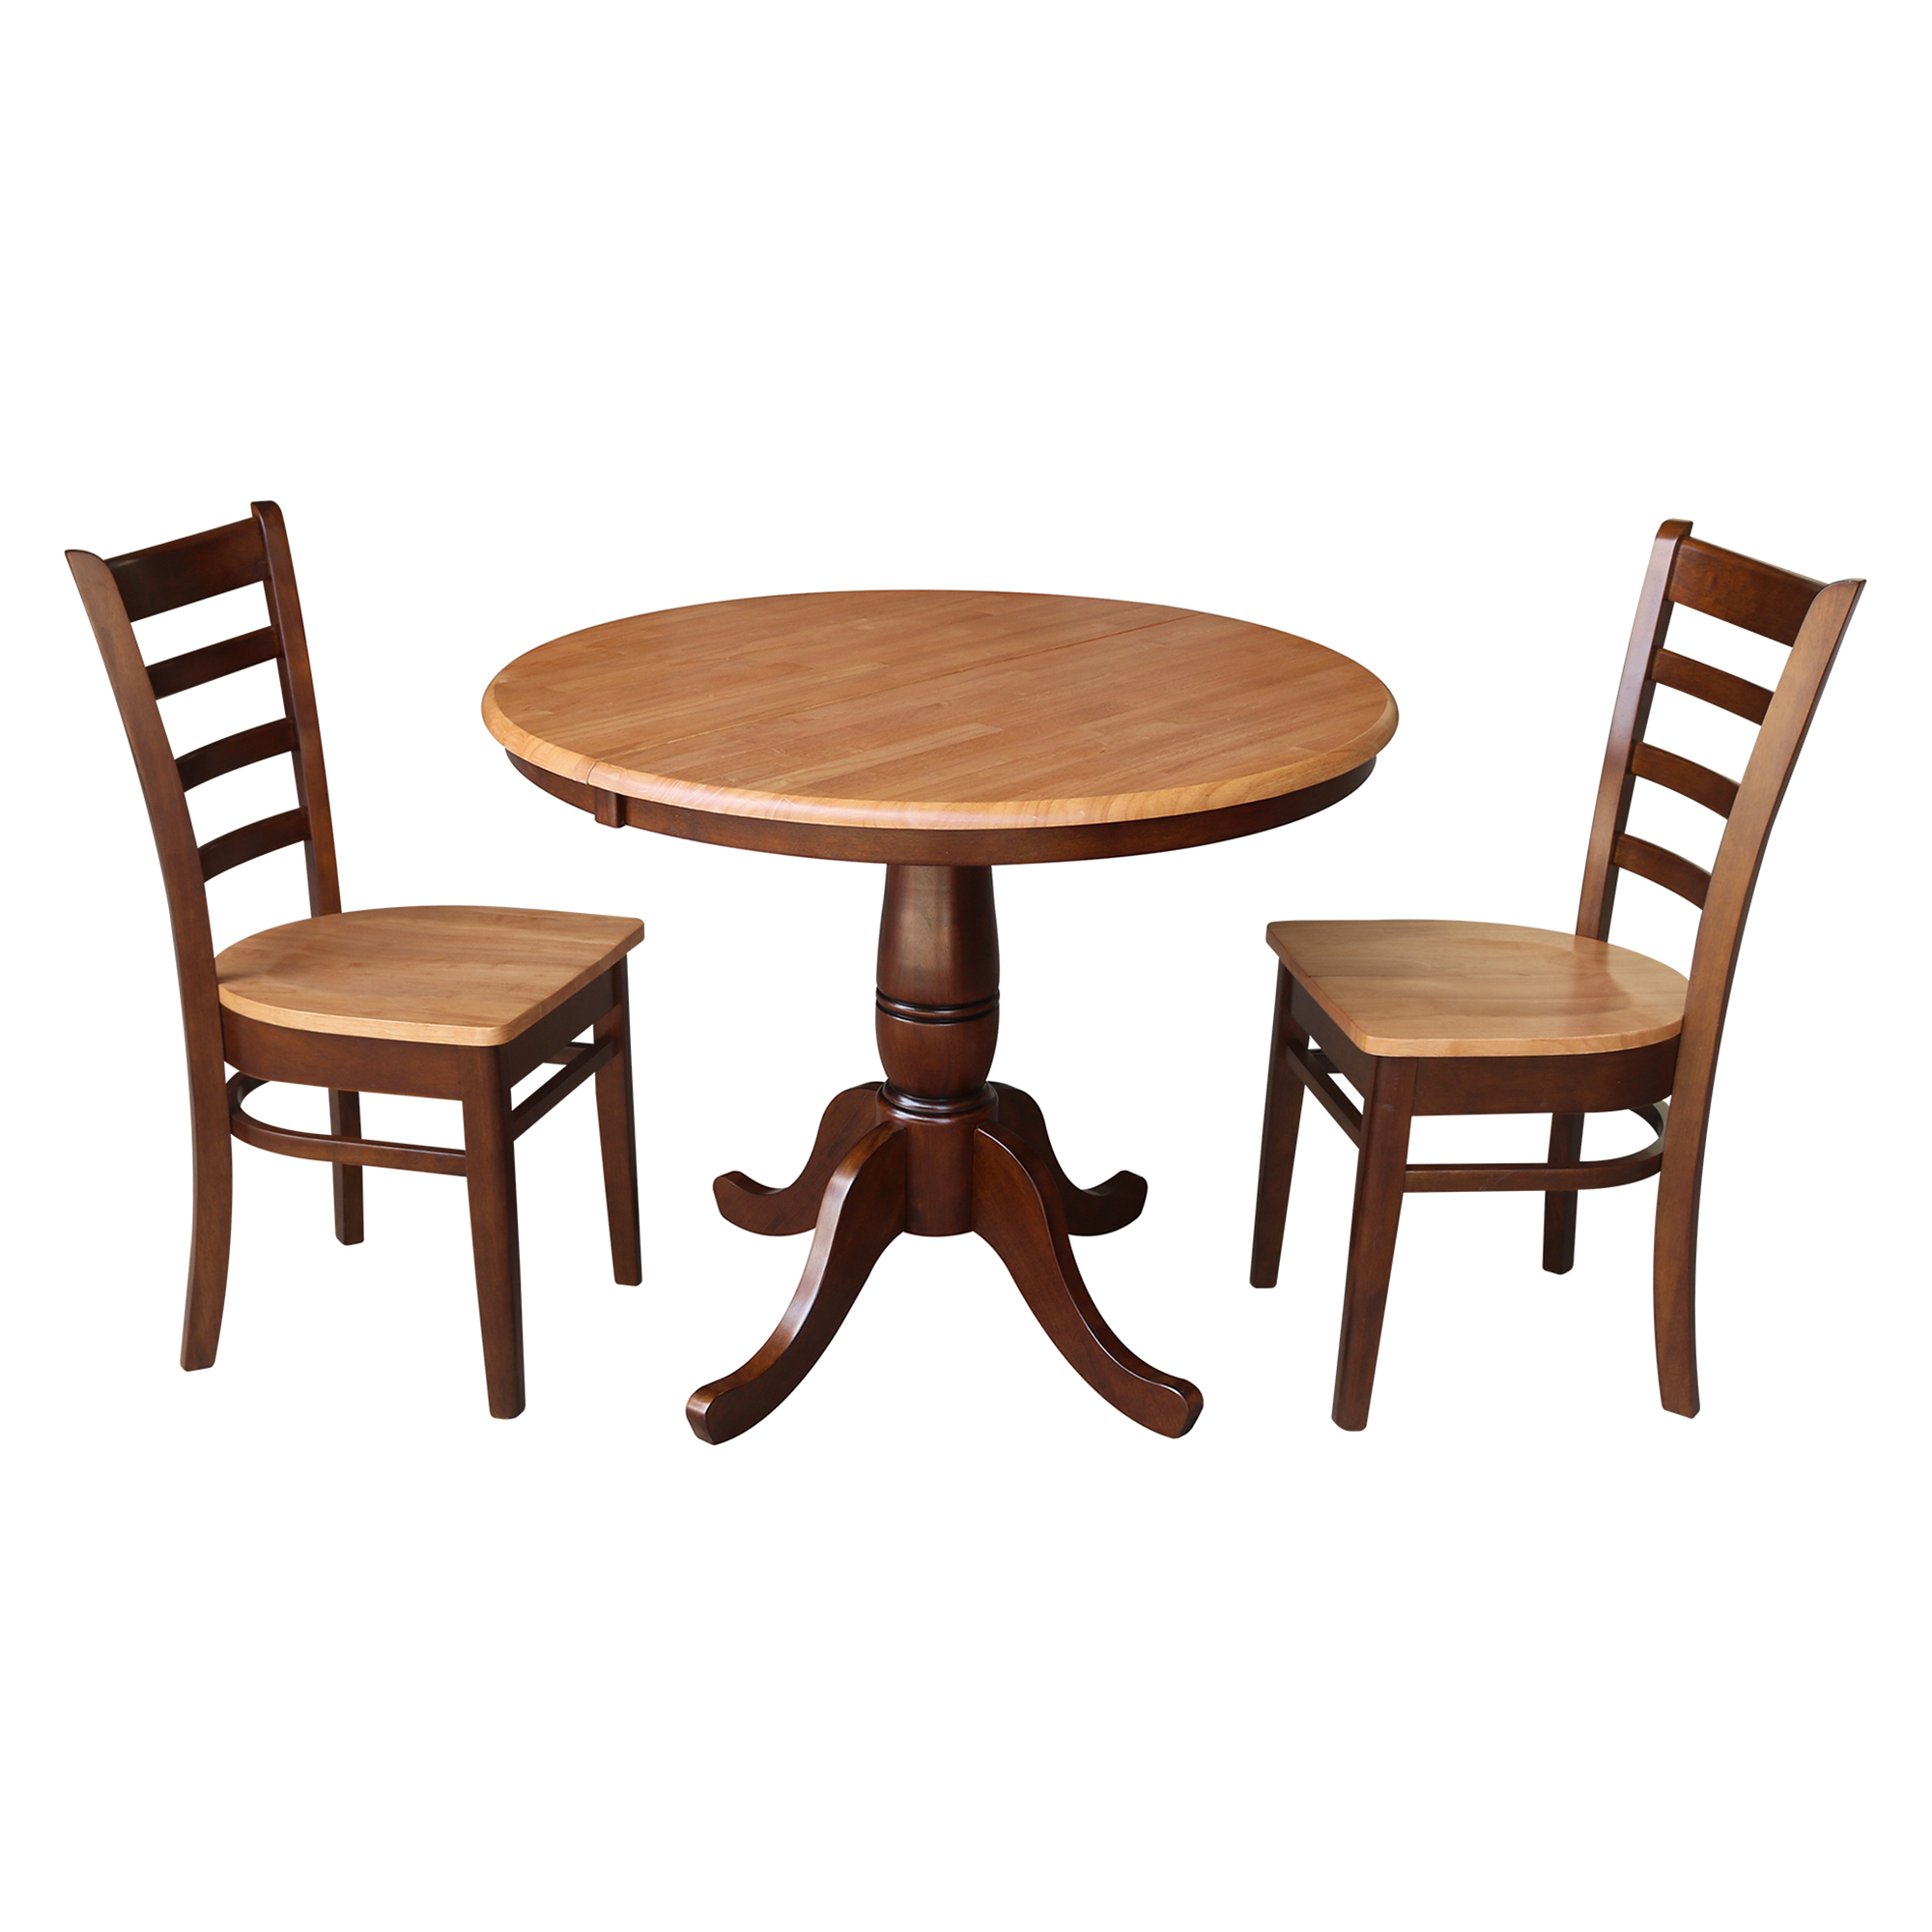 """36"""" Round Dining Table with 12"""" Leaf And 2 Madrid Chairs - Cinnamon/Espresso - 3 Piece Set"""